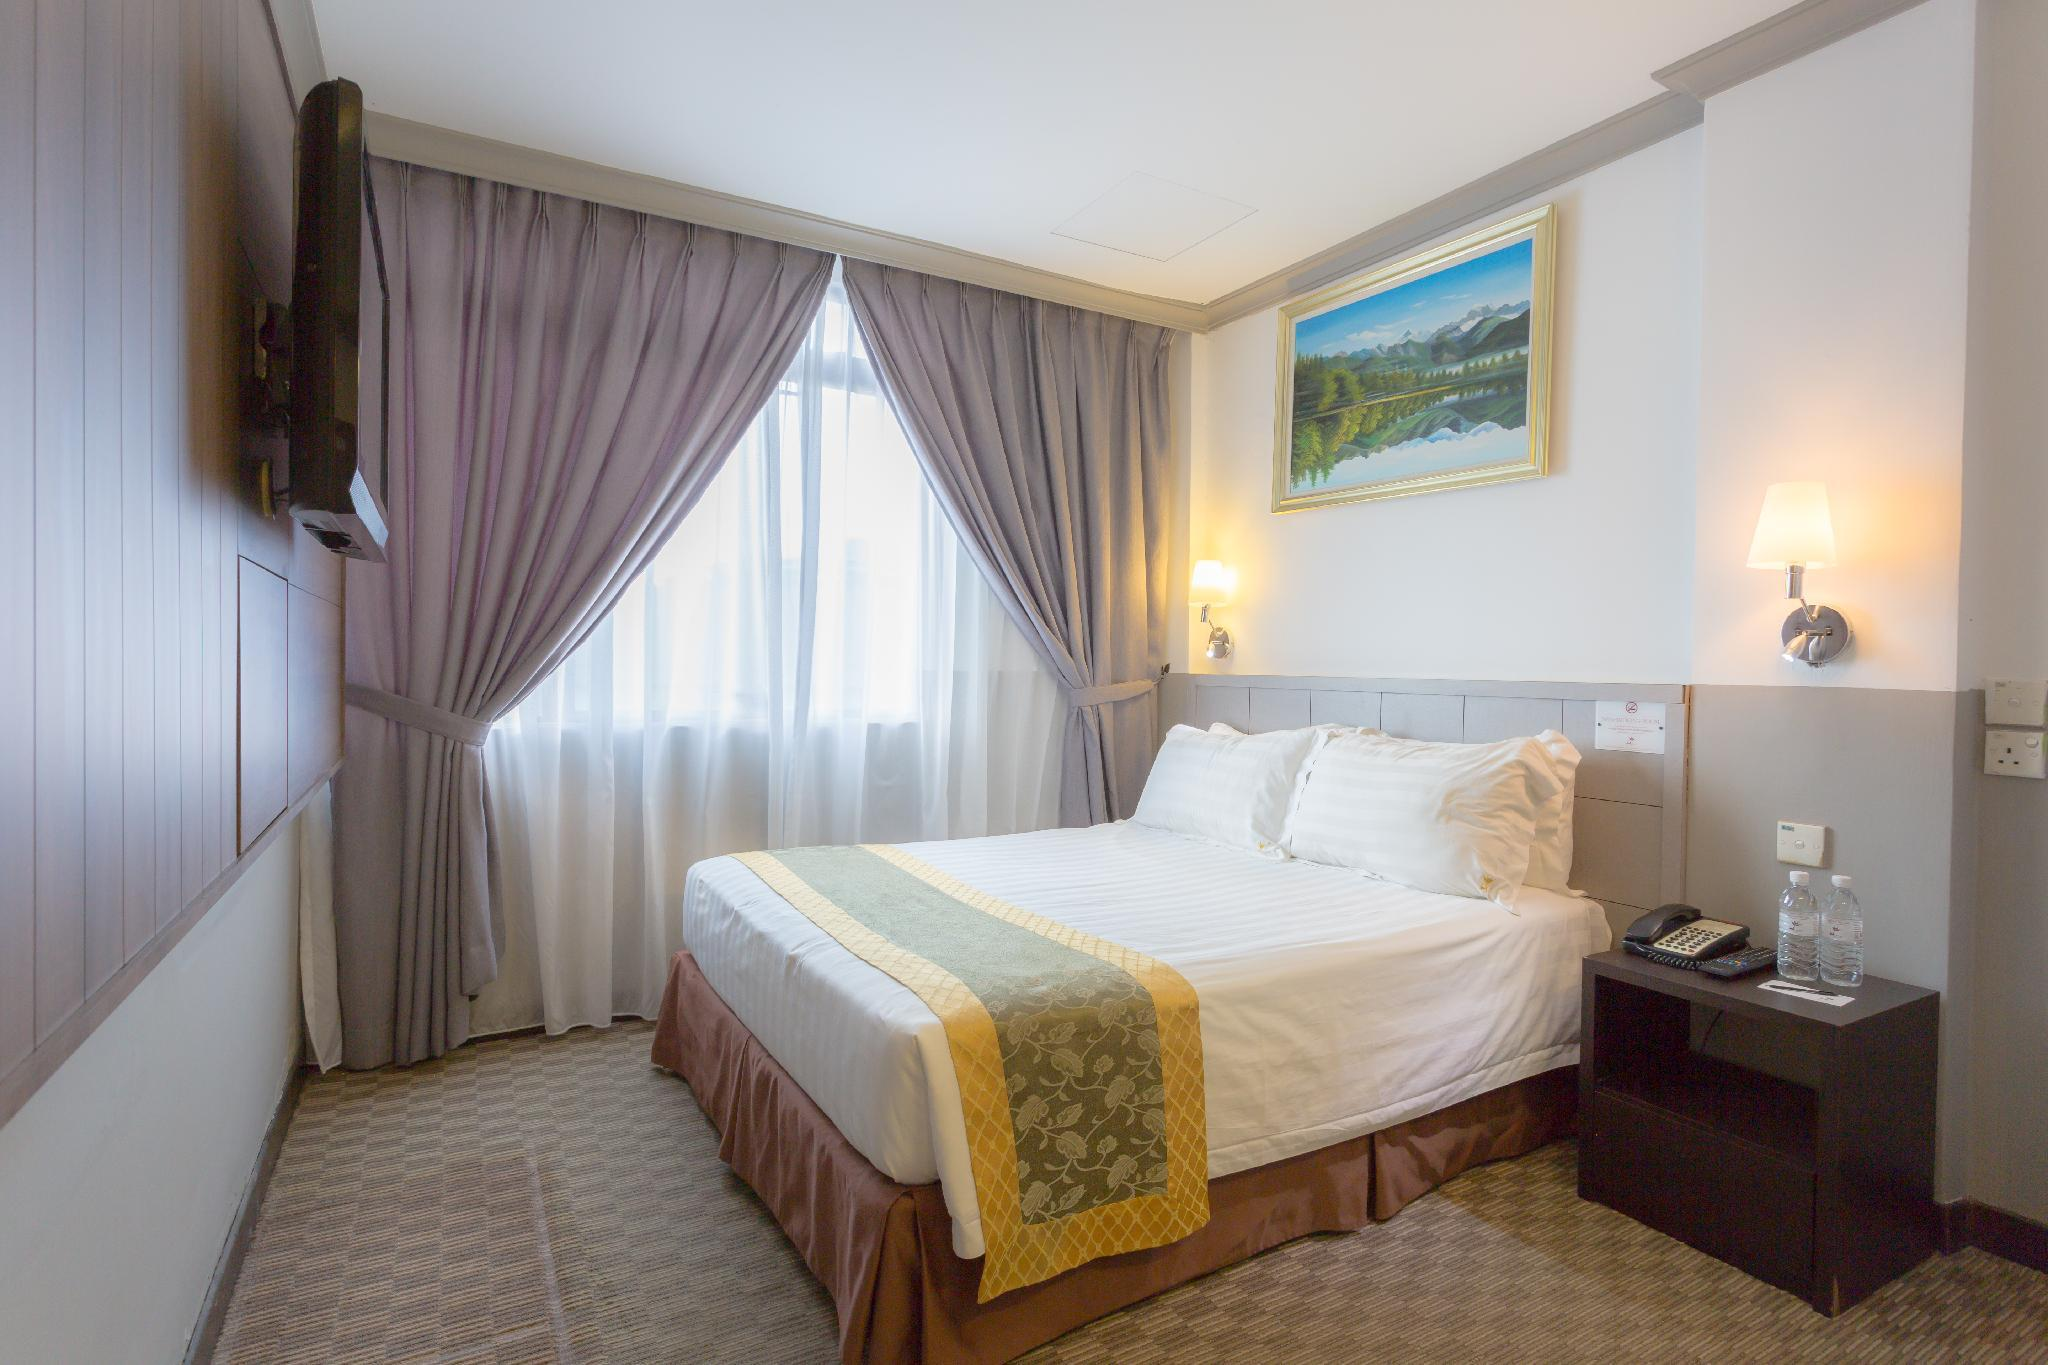 Deluxe Hot Deal - Min. 2 nights